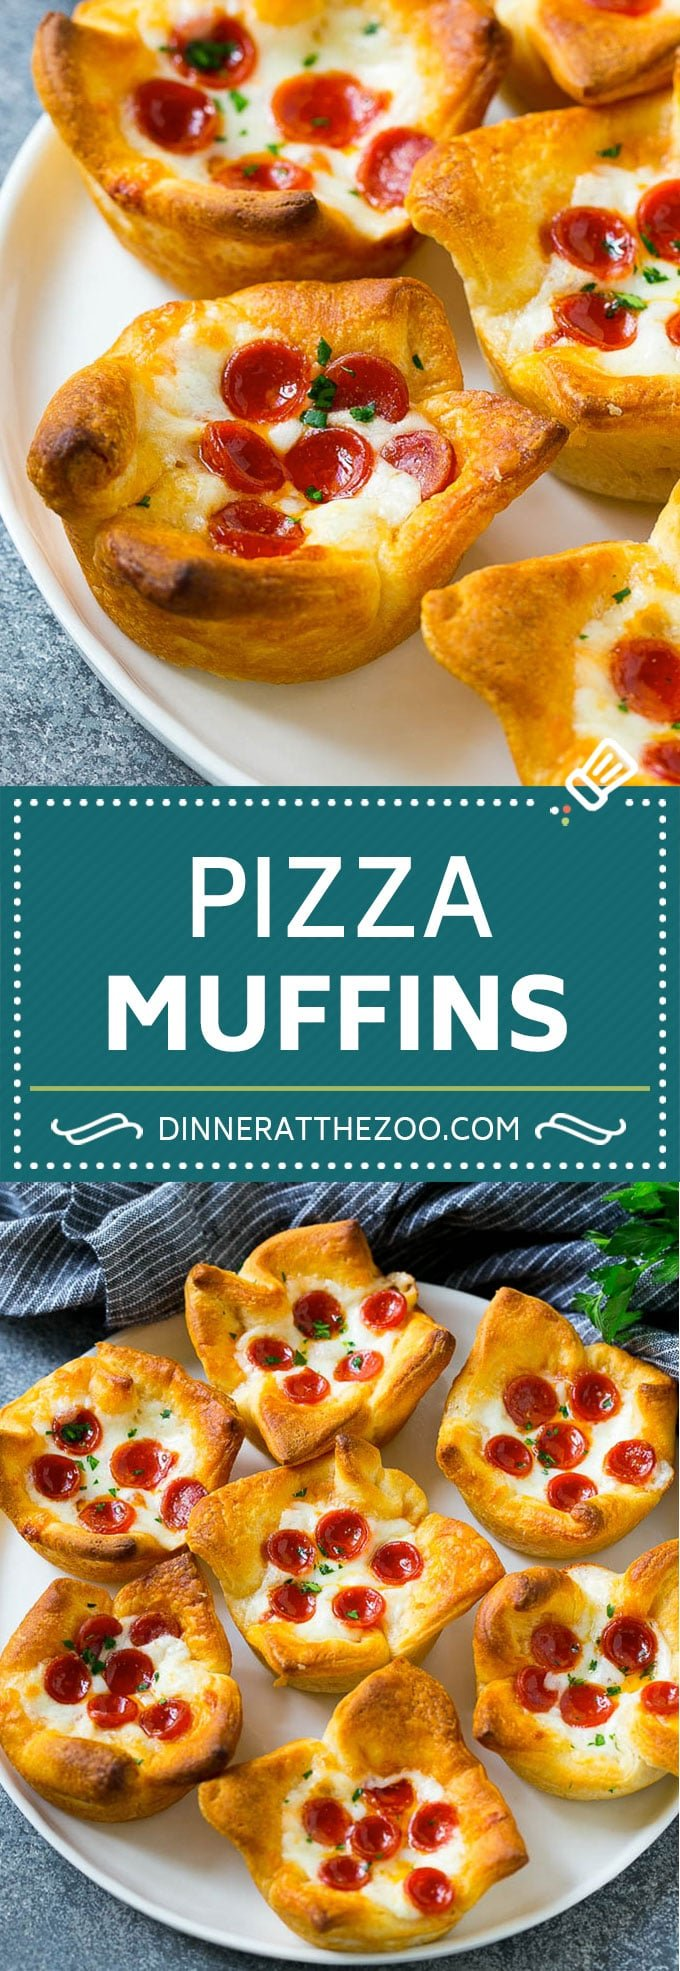 Pizza Muffins Recipe | Pizza Bites | Pizza Cups | Pizza Appetizer #pizza #appetizer #dinneratthezoo